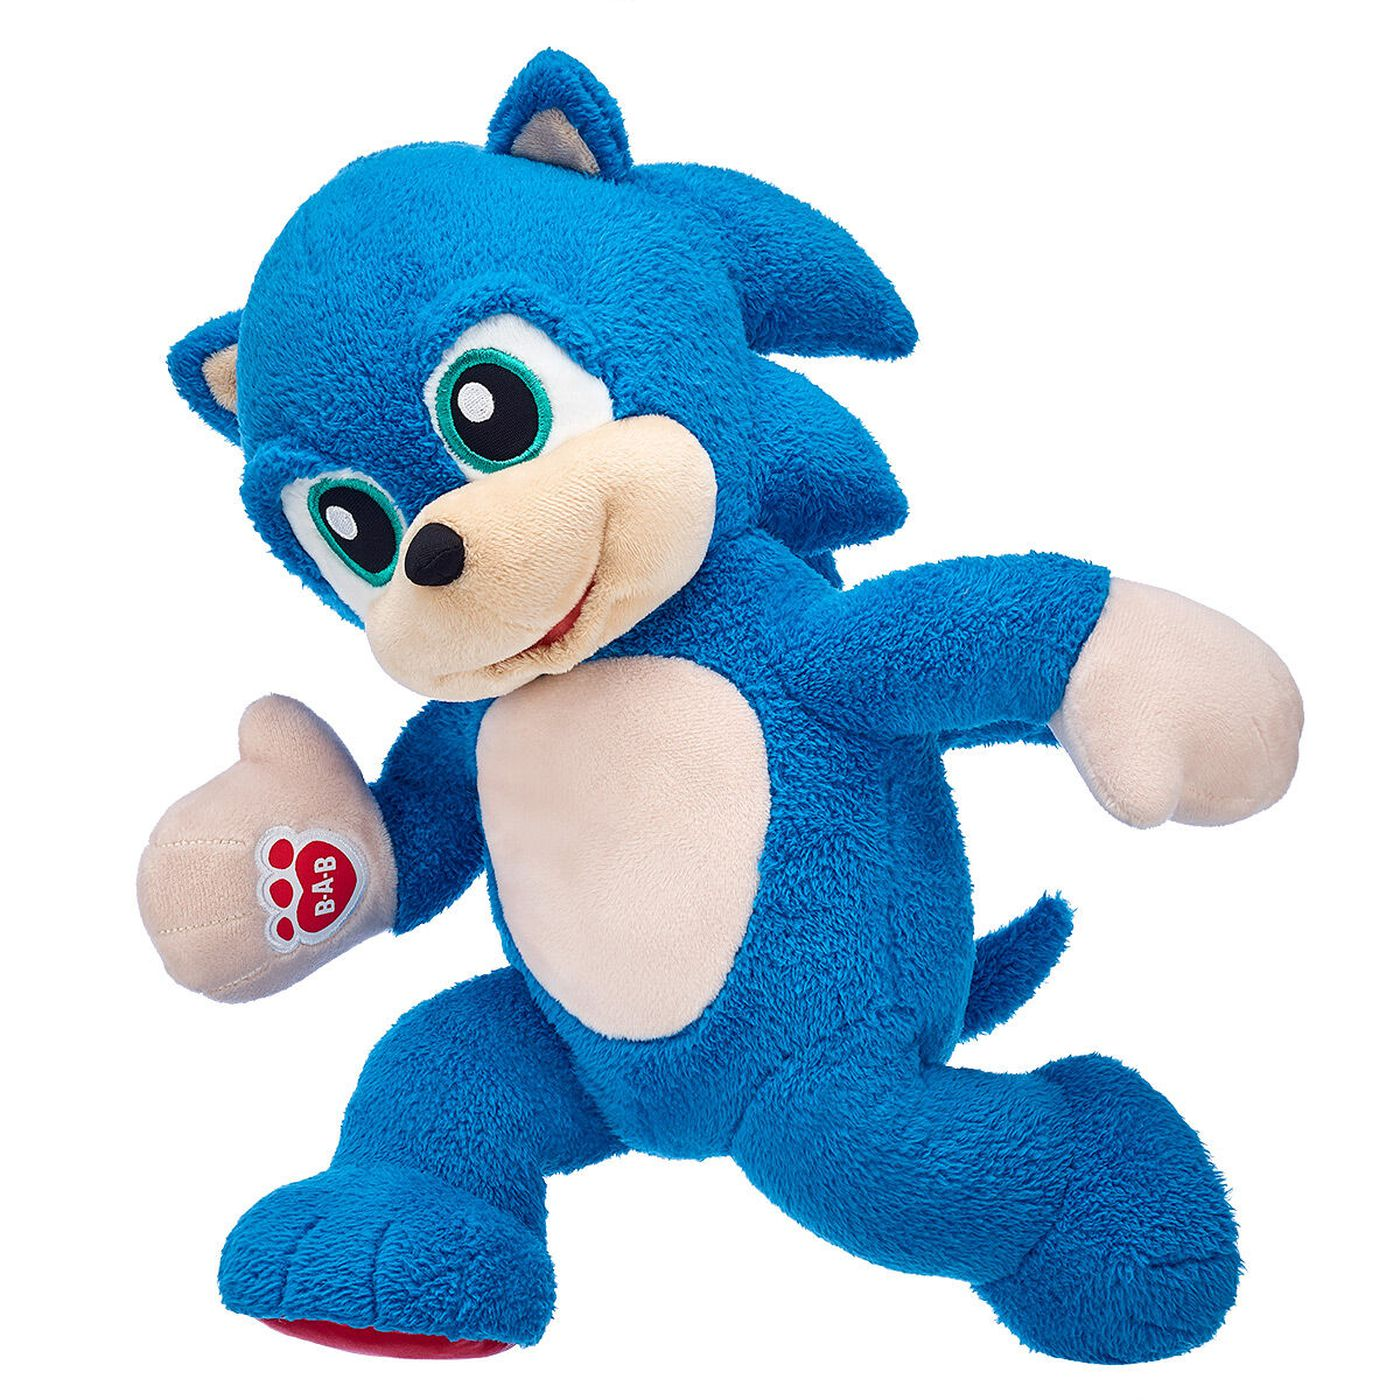 Build A Bear Sonic The Hedgehog Stuffed Animal Comes With Bare Feet Polygon